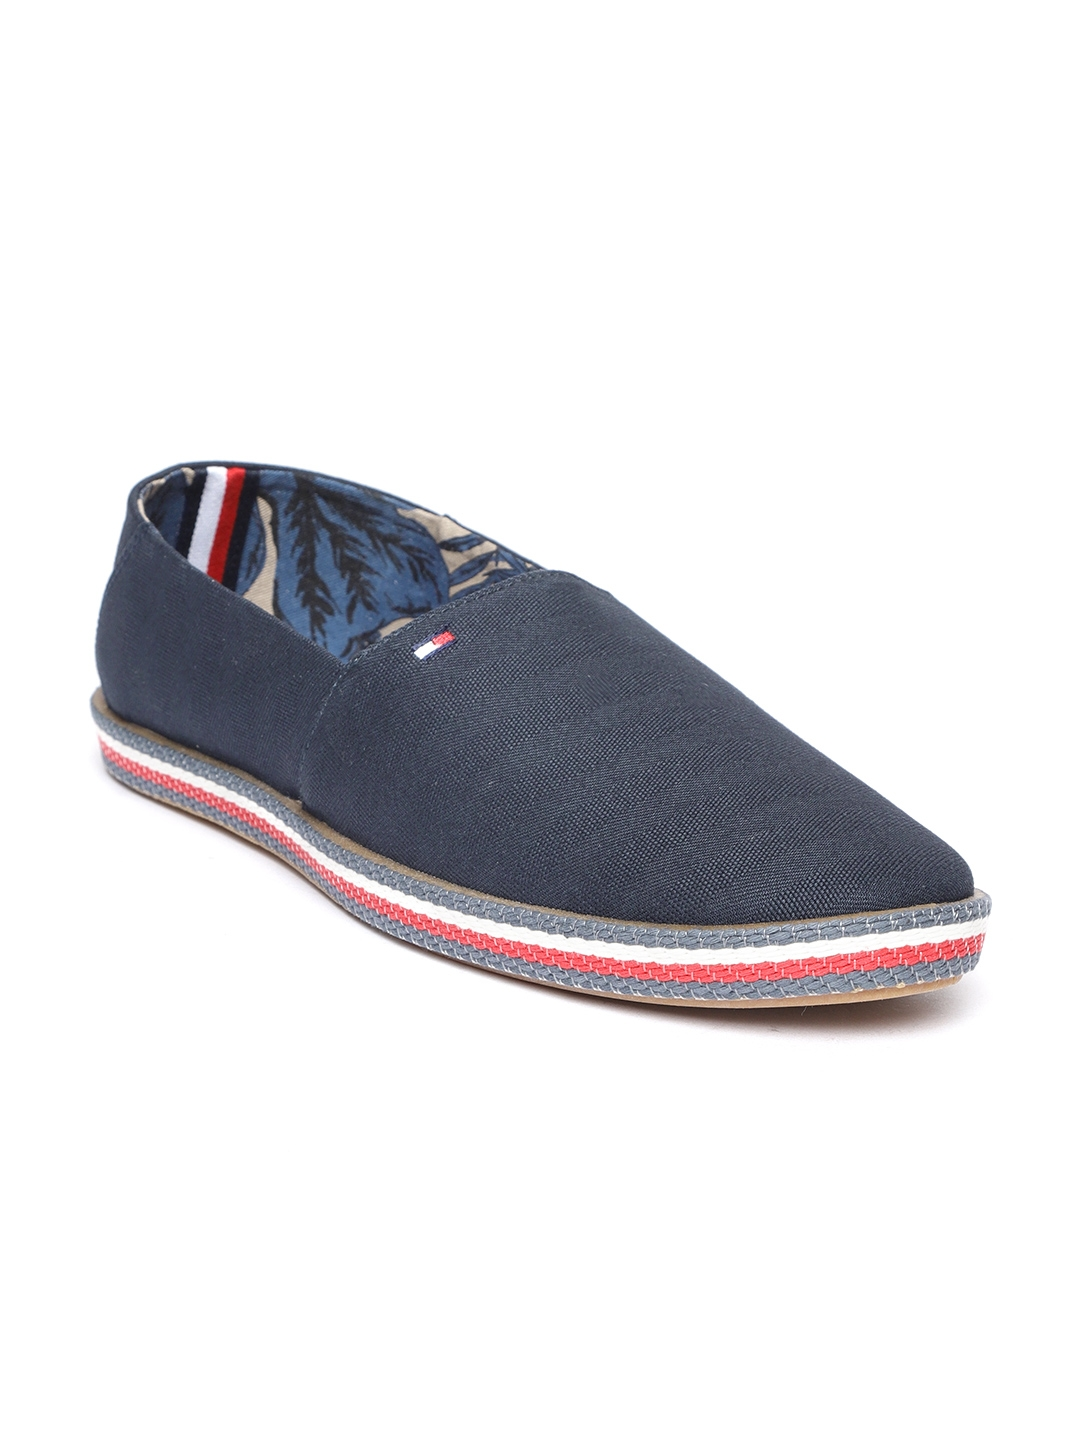 4777e39fd Buy Tommy Hilfiger Men Navy Blue Slip On Sneakers - Casual Shoes for ...